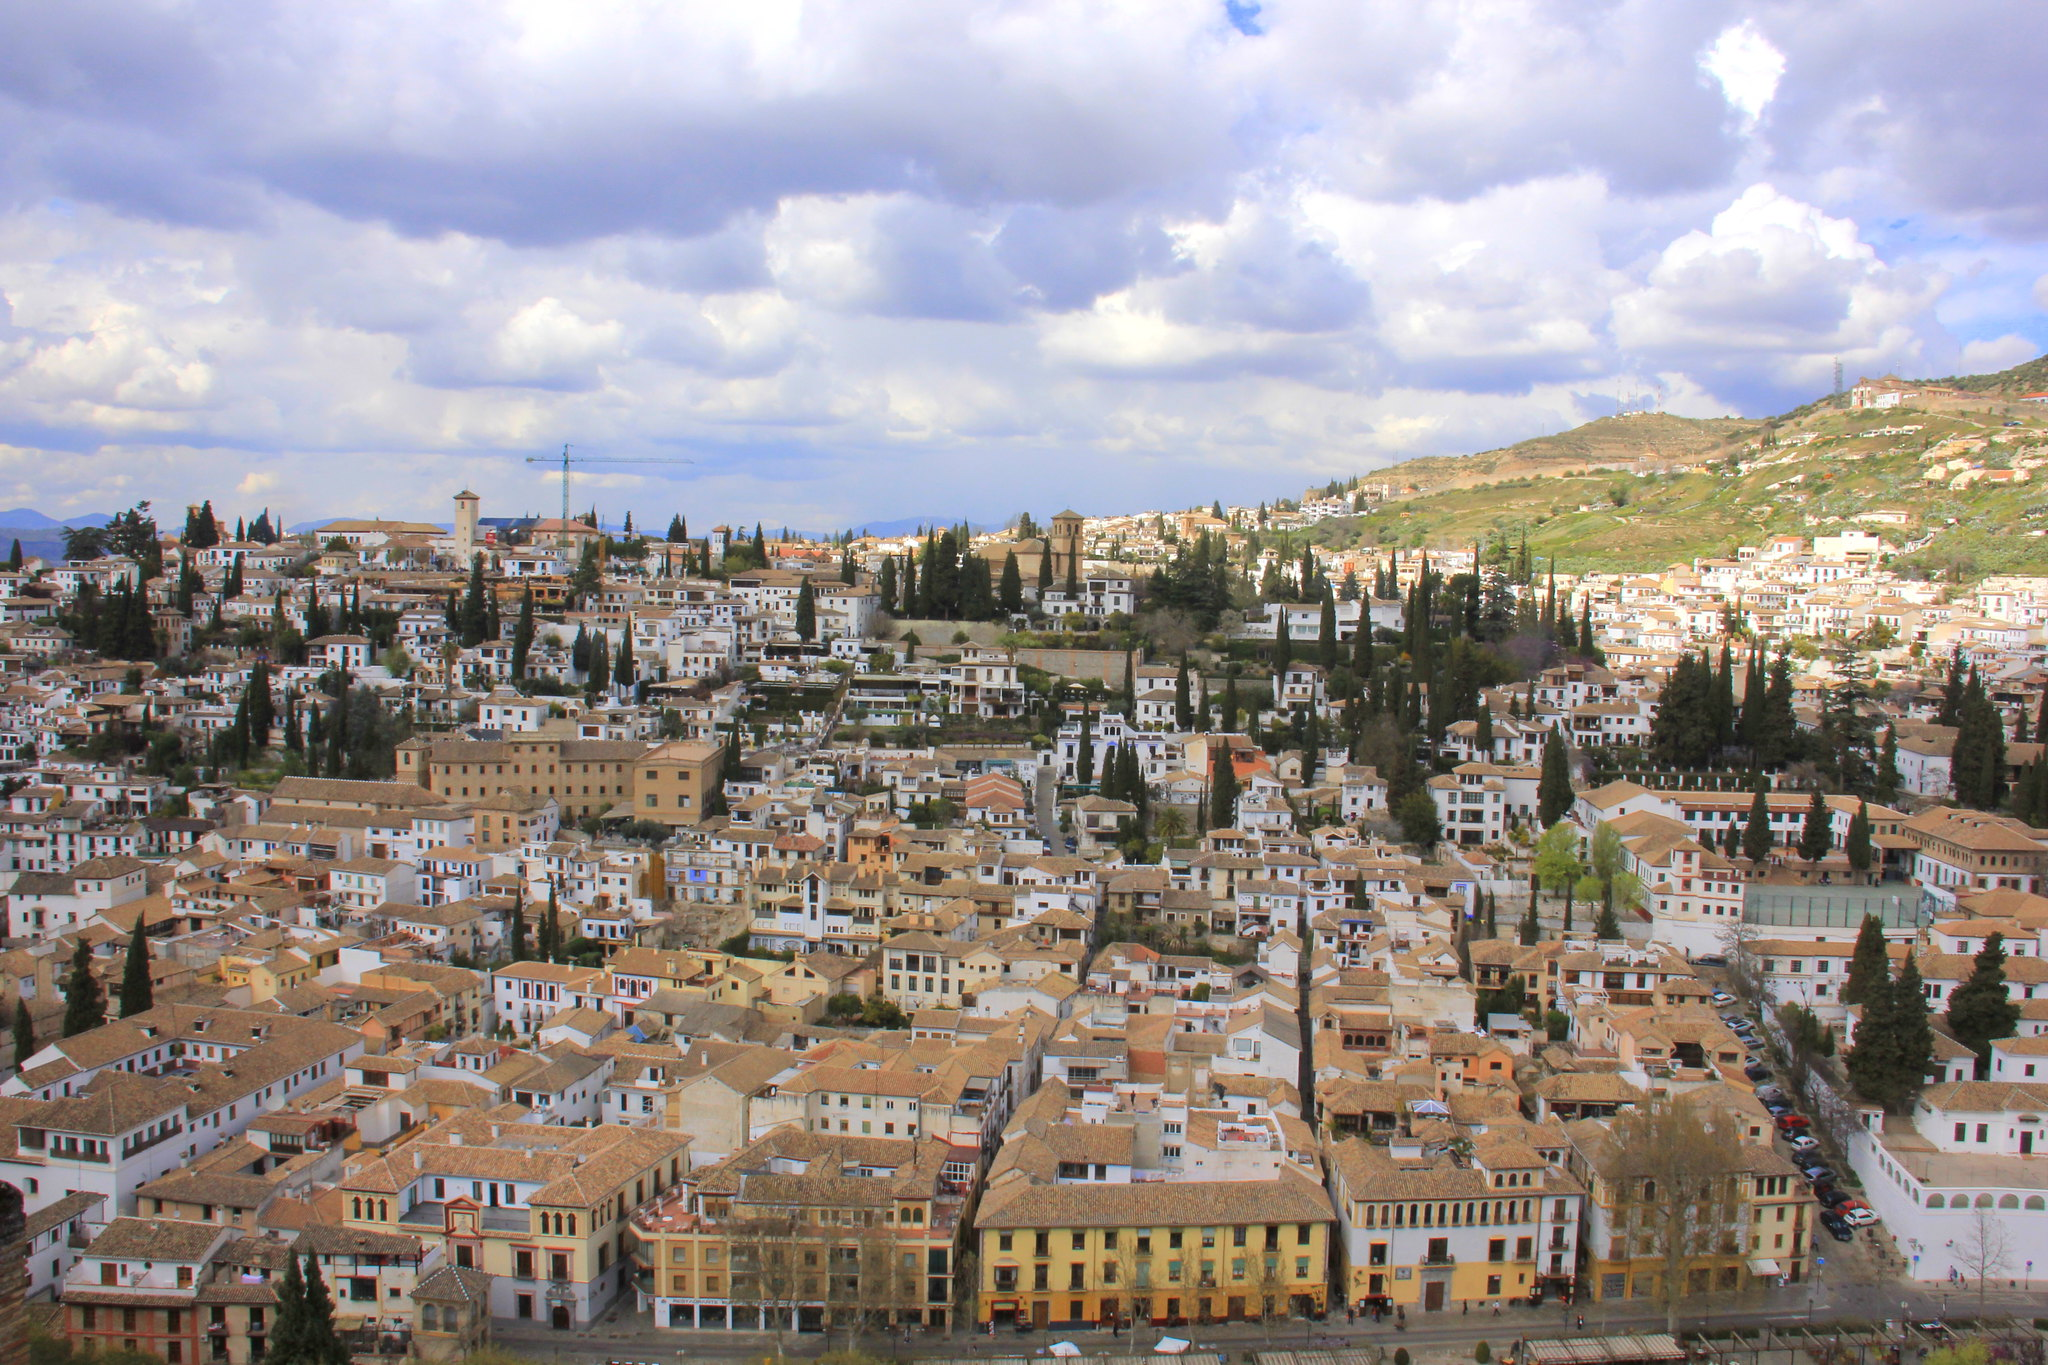 Stunning views of Granada from the summit of Alcazaba in Alhambra